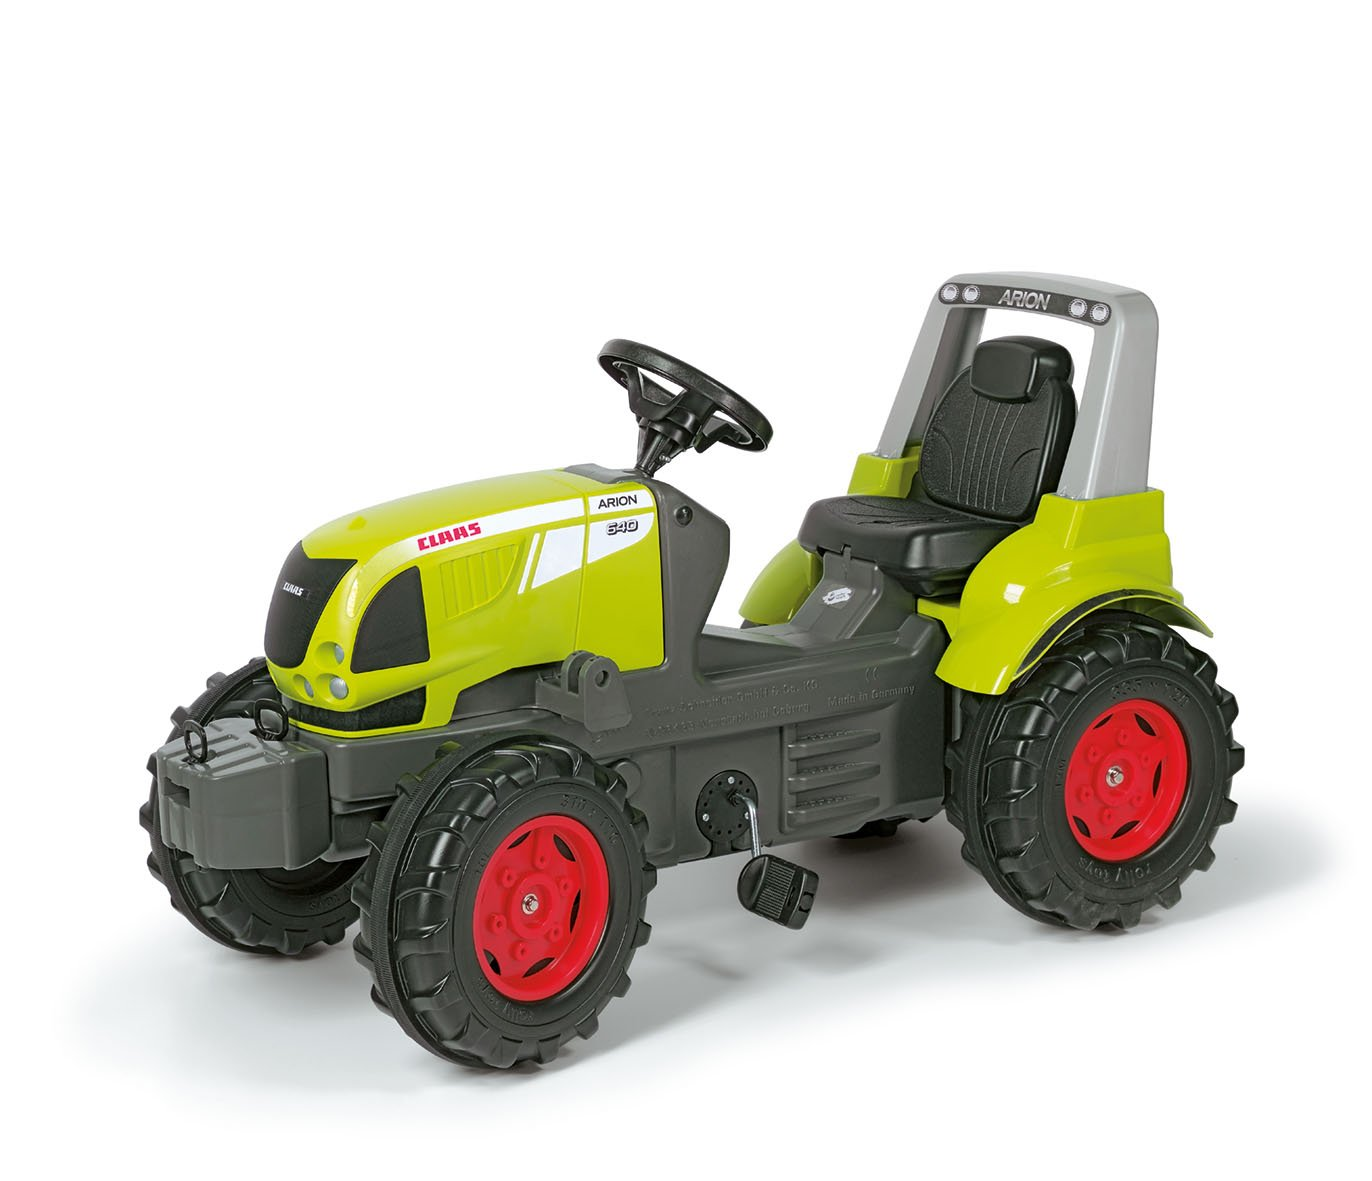 Rolly Toys Claas Arion 640 - Rolly Toys 700233 ohne Ladeschaufel